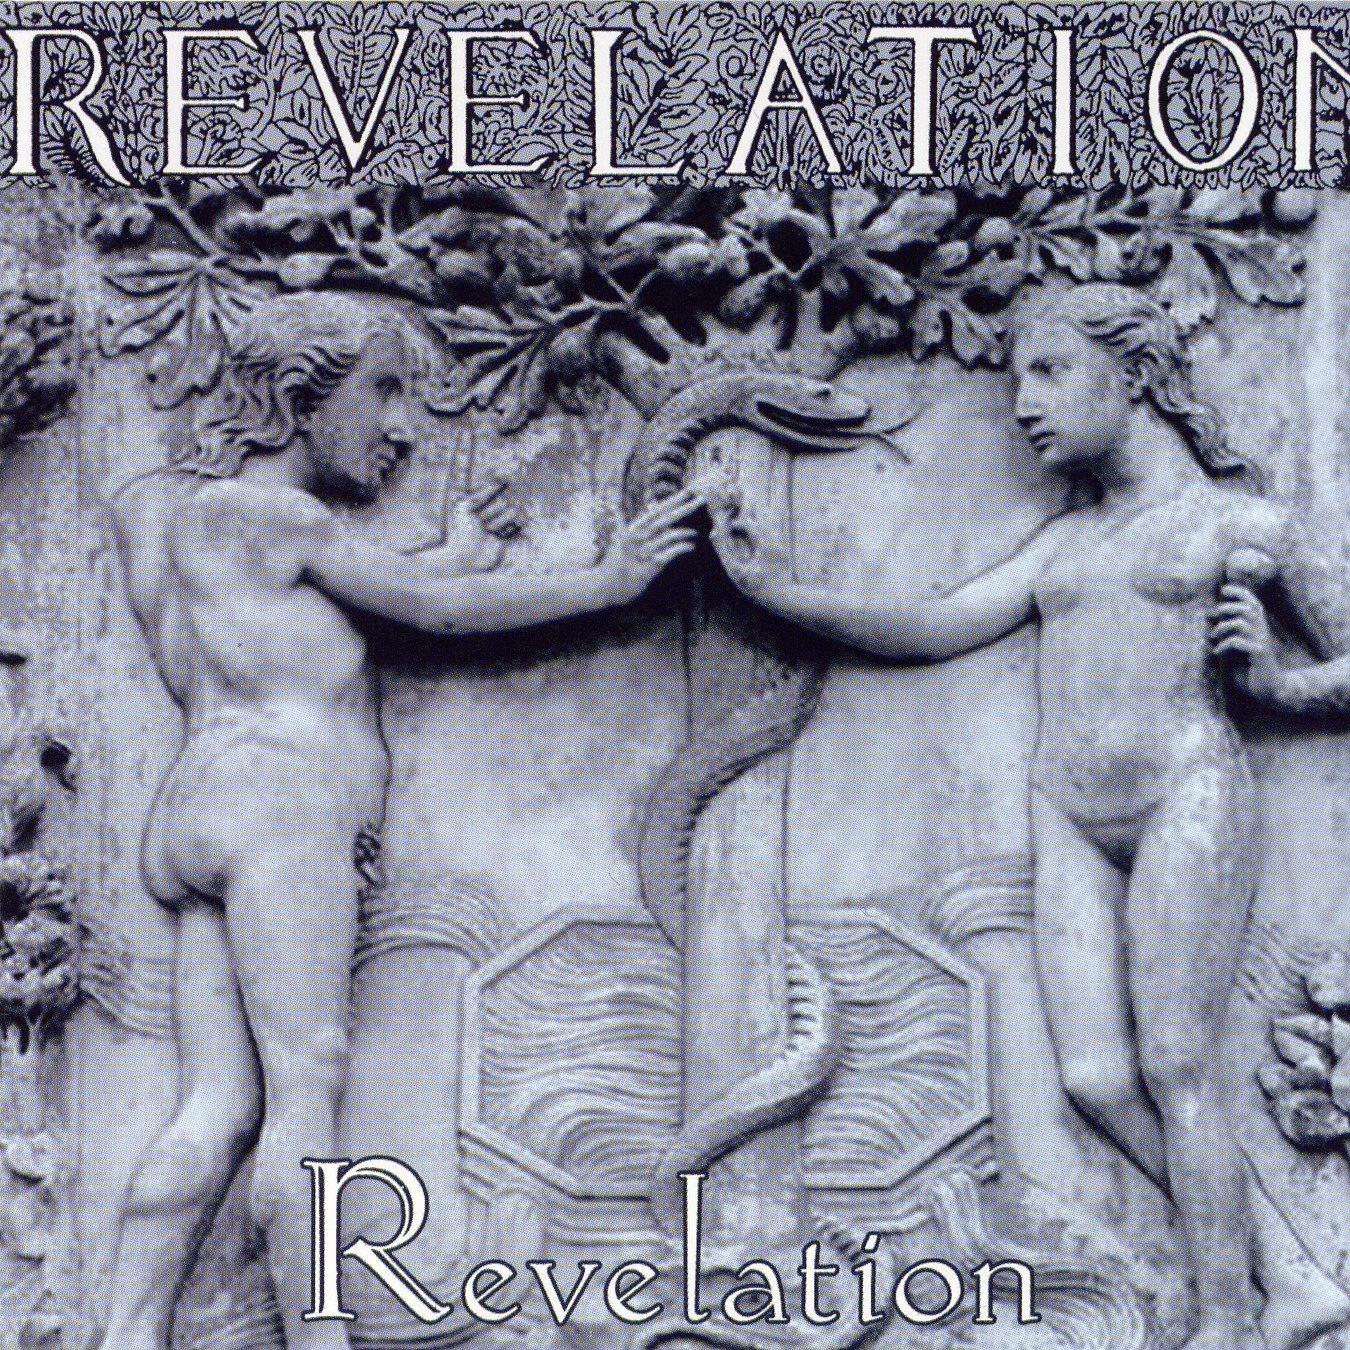 Revelation - Revelation ( unreleased album 1988)